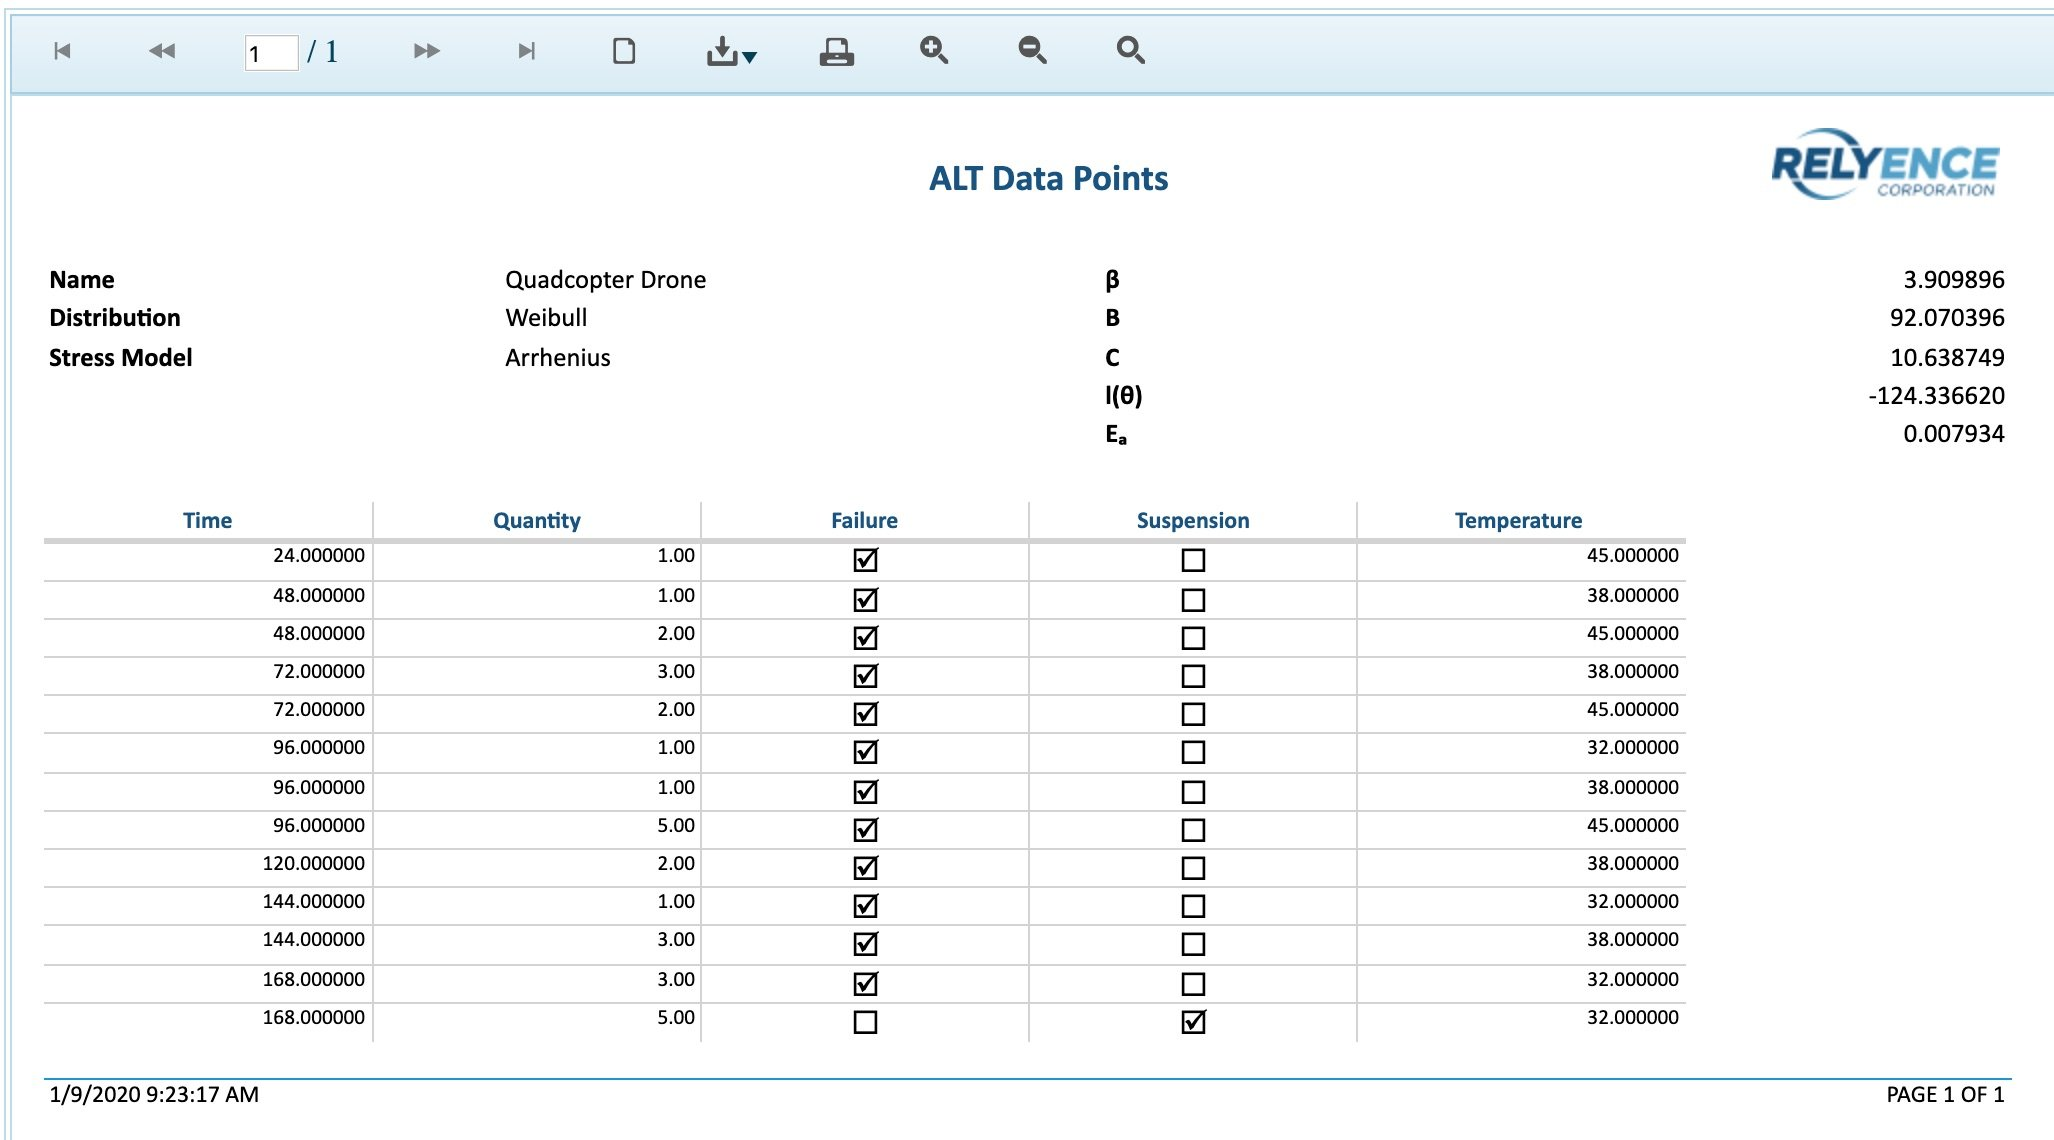 Relyence ALT Data Points Report